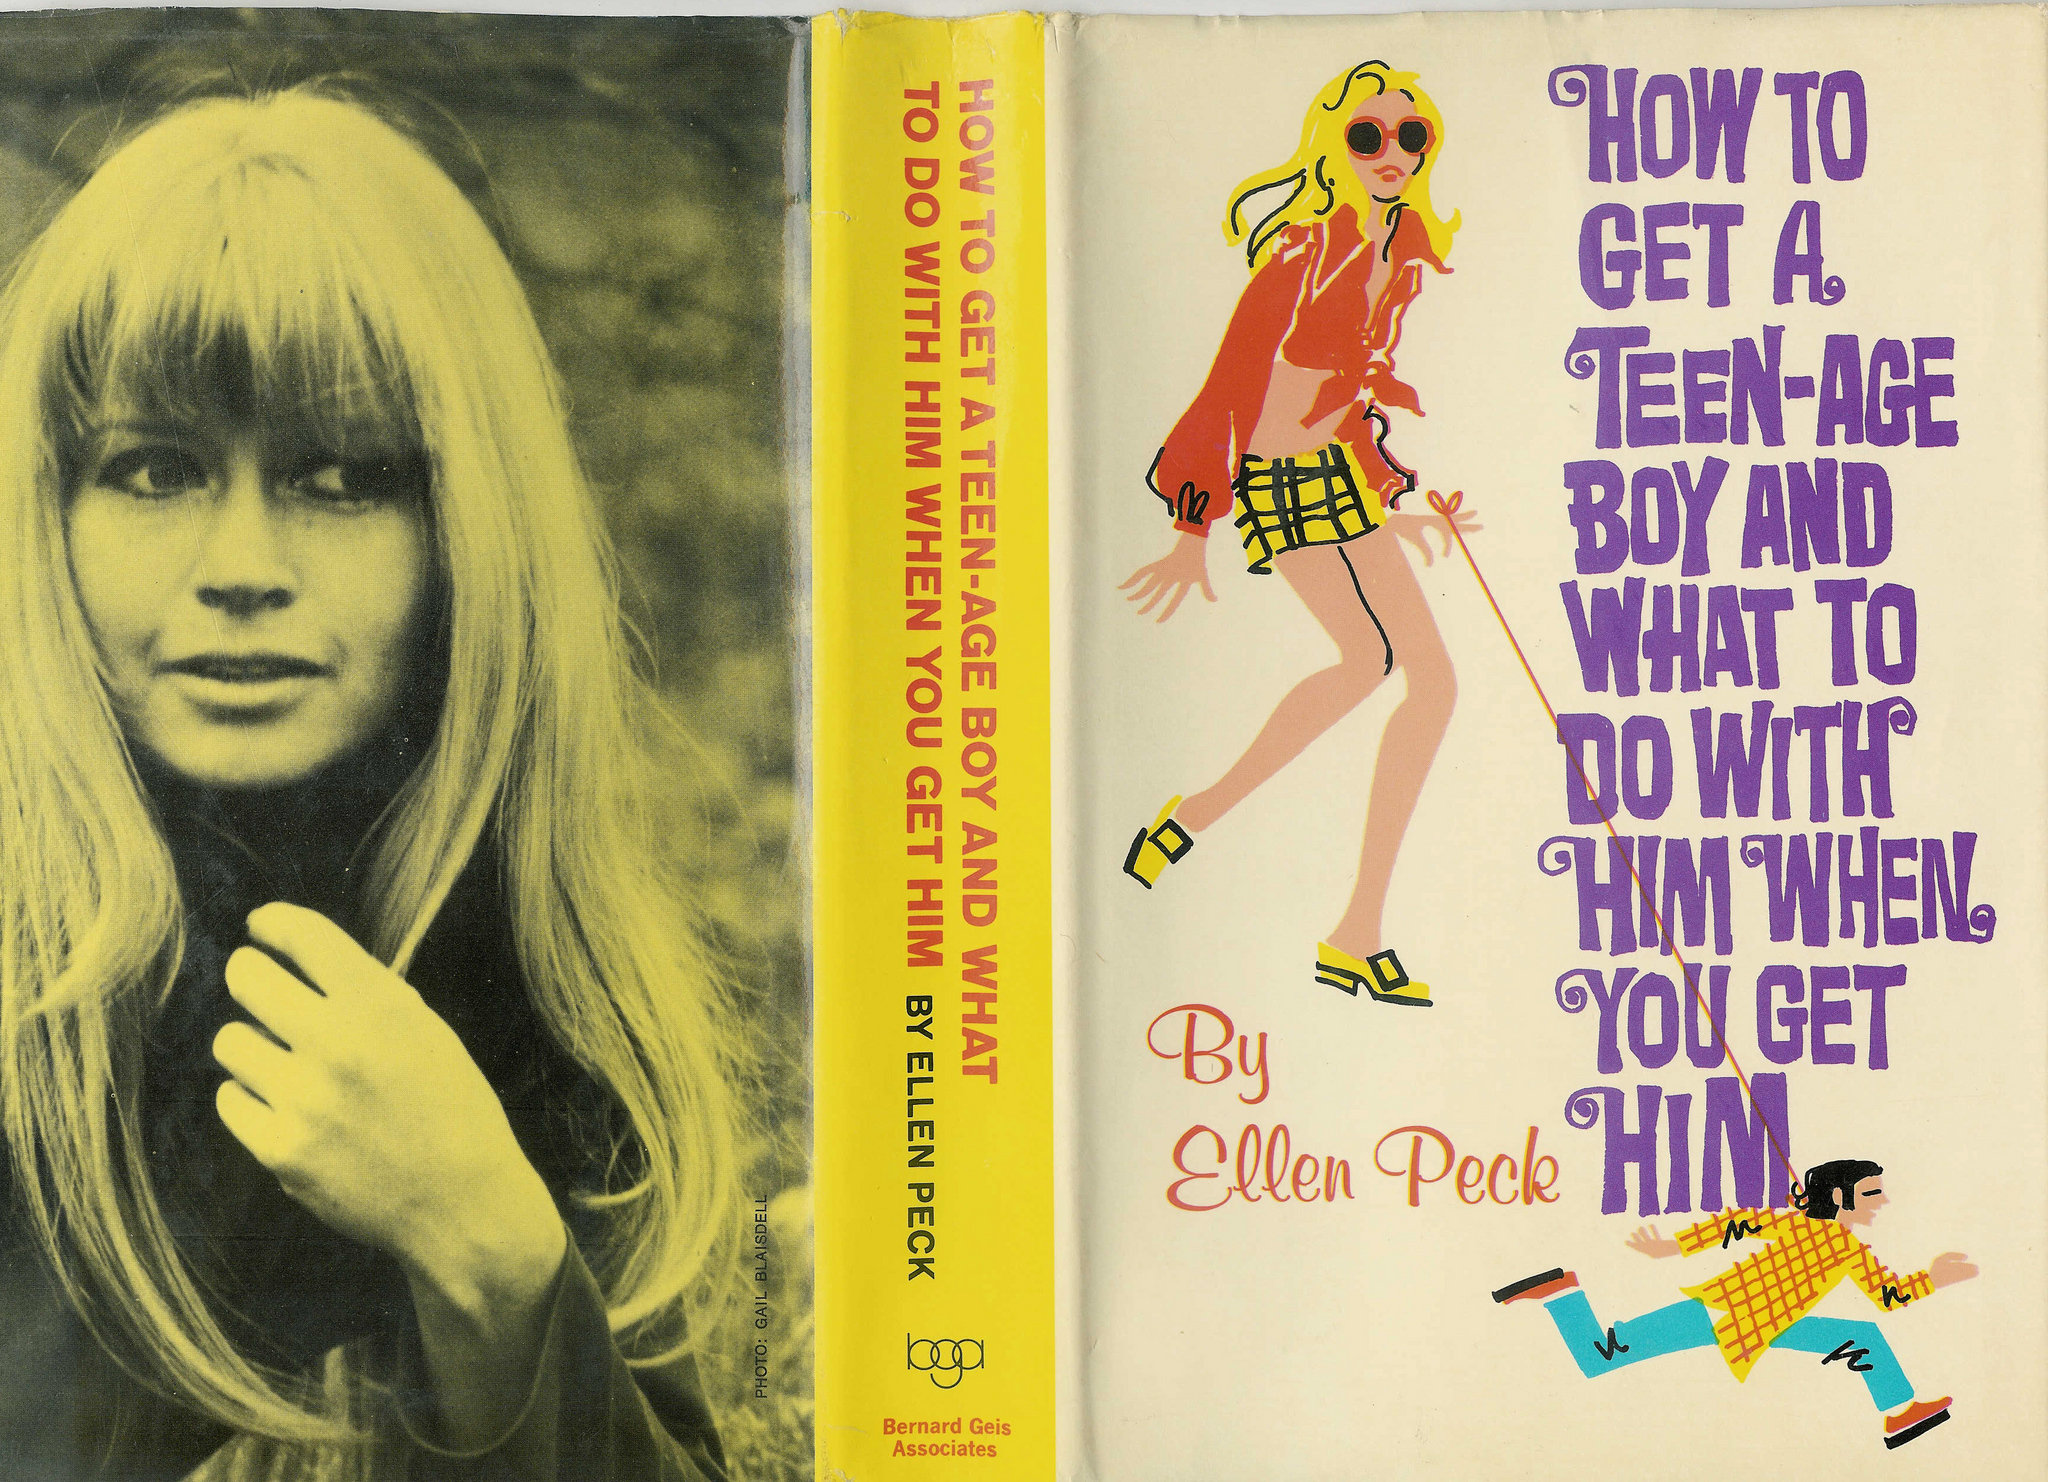 How to Get A Teenage Boy by Ellen Peck